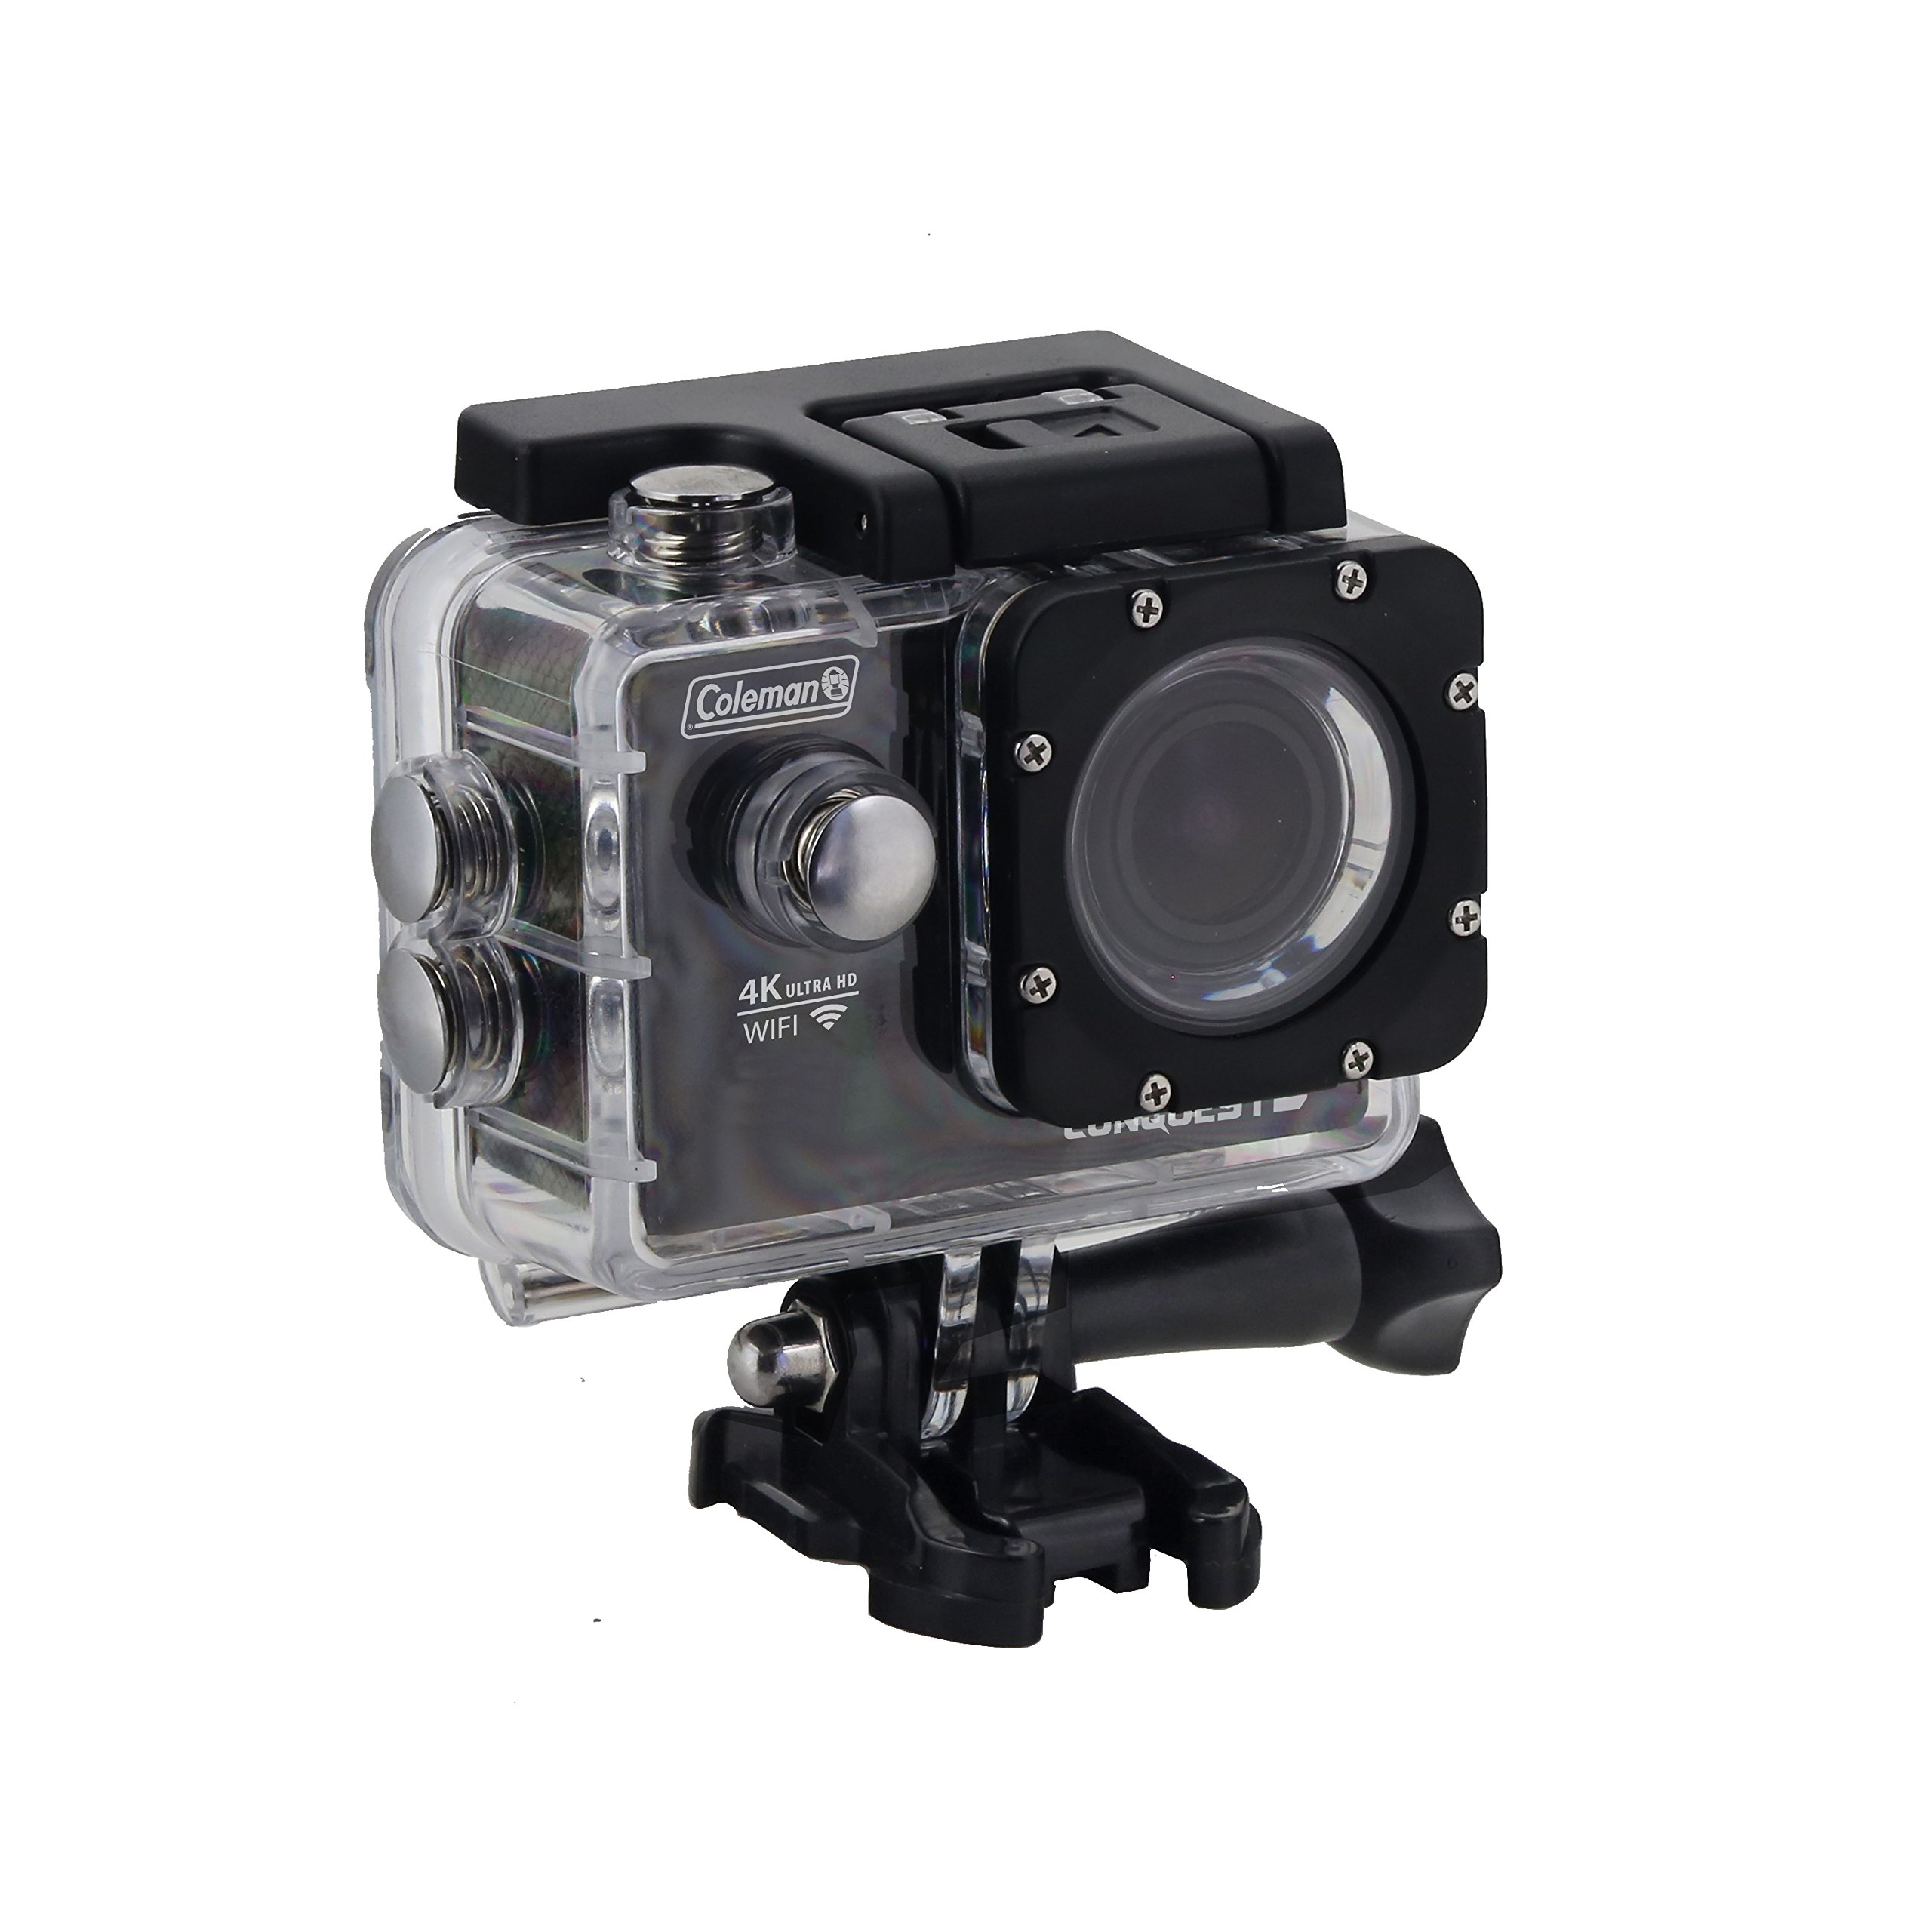 Coleman CX14WP Conquest3 Waterproof Housing